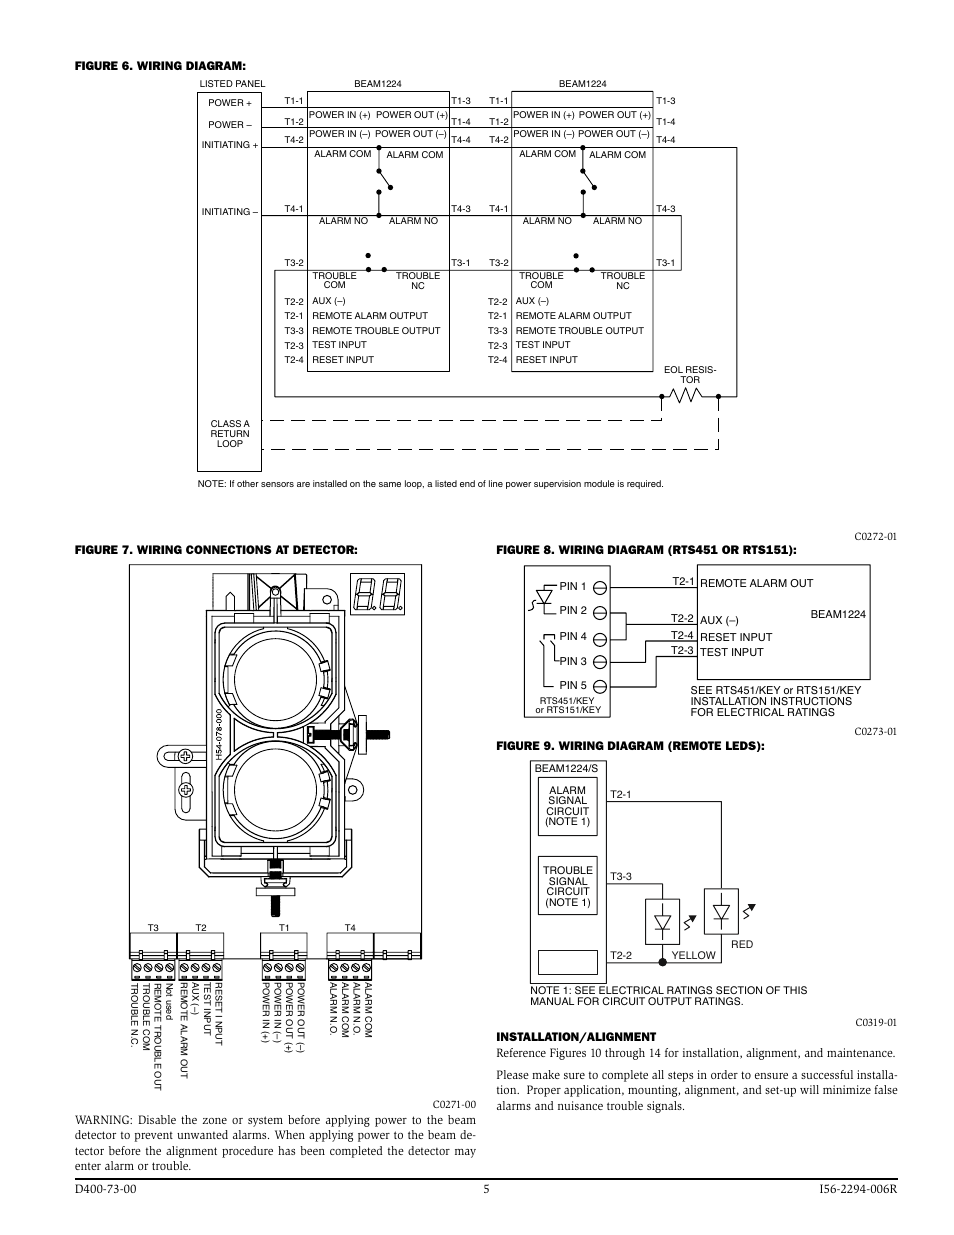 system sensor beam1224 beam1224s page5 system sensor beam1224, beam1224s user manual page 5 13 5R55E Transmission Wiring Diagram at bayanpartner.co